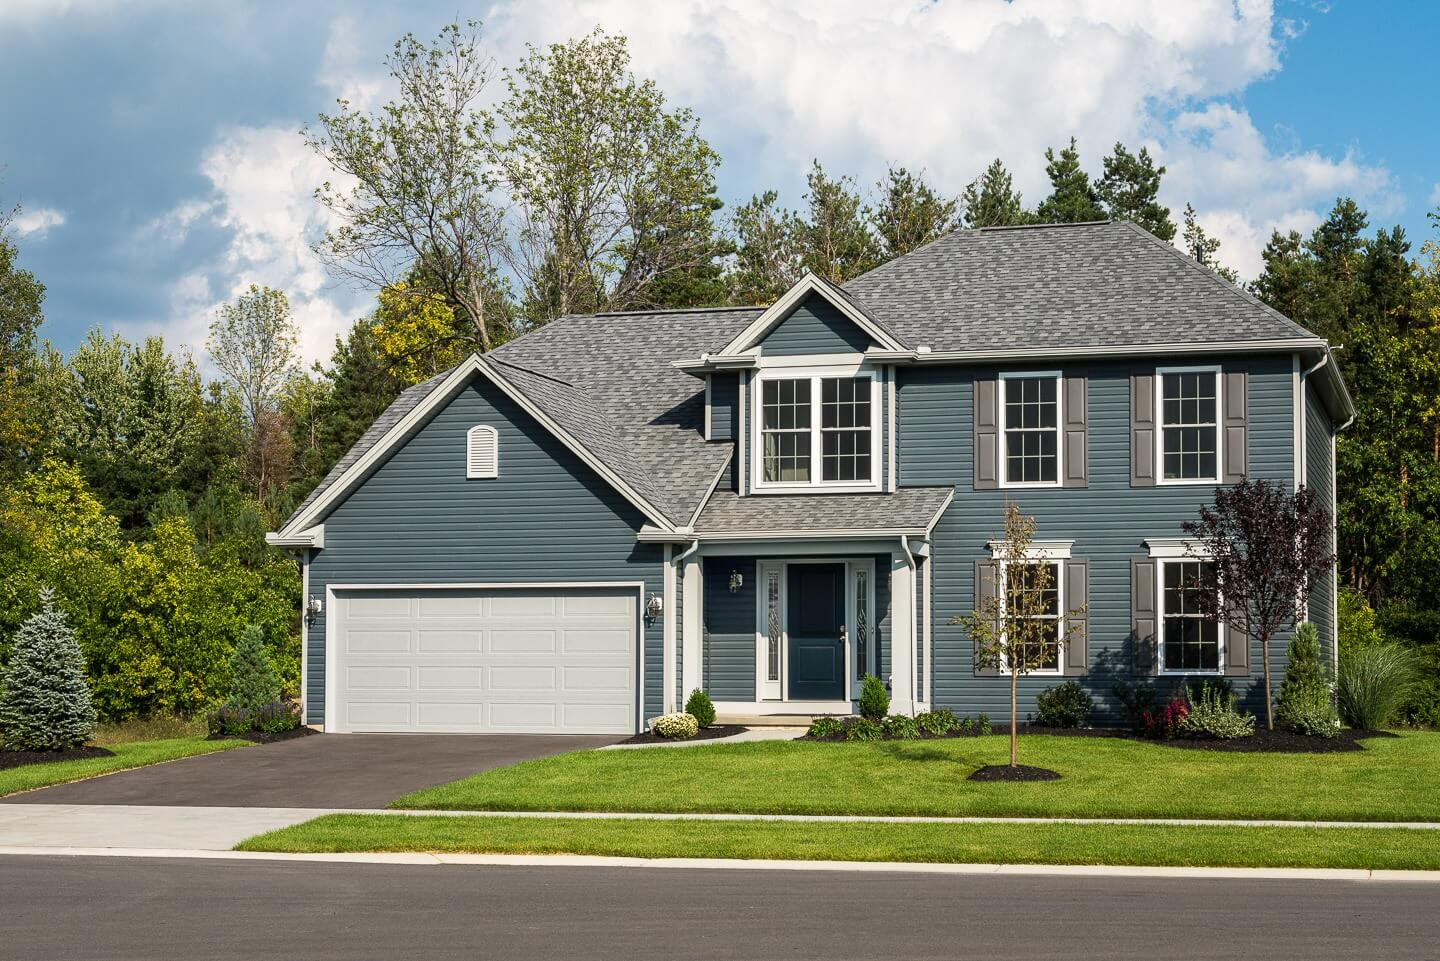 New Home Single Family Design 127 Boxelder, Buffalo, NY 14228